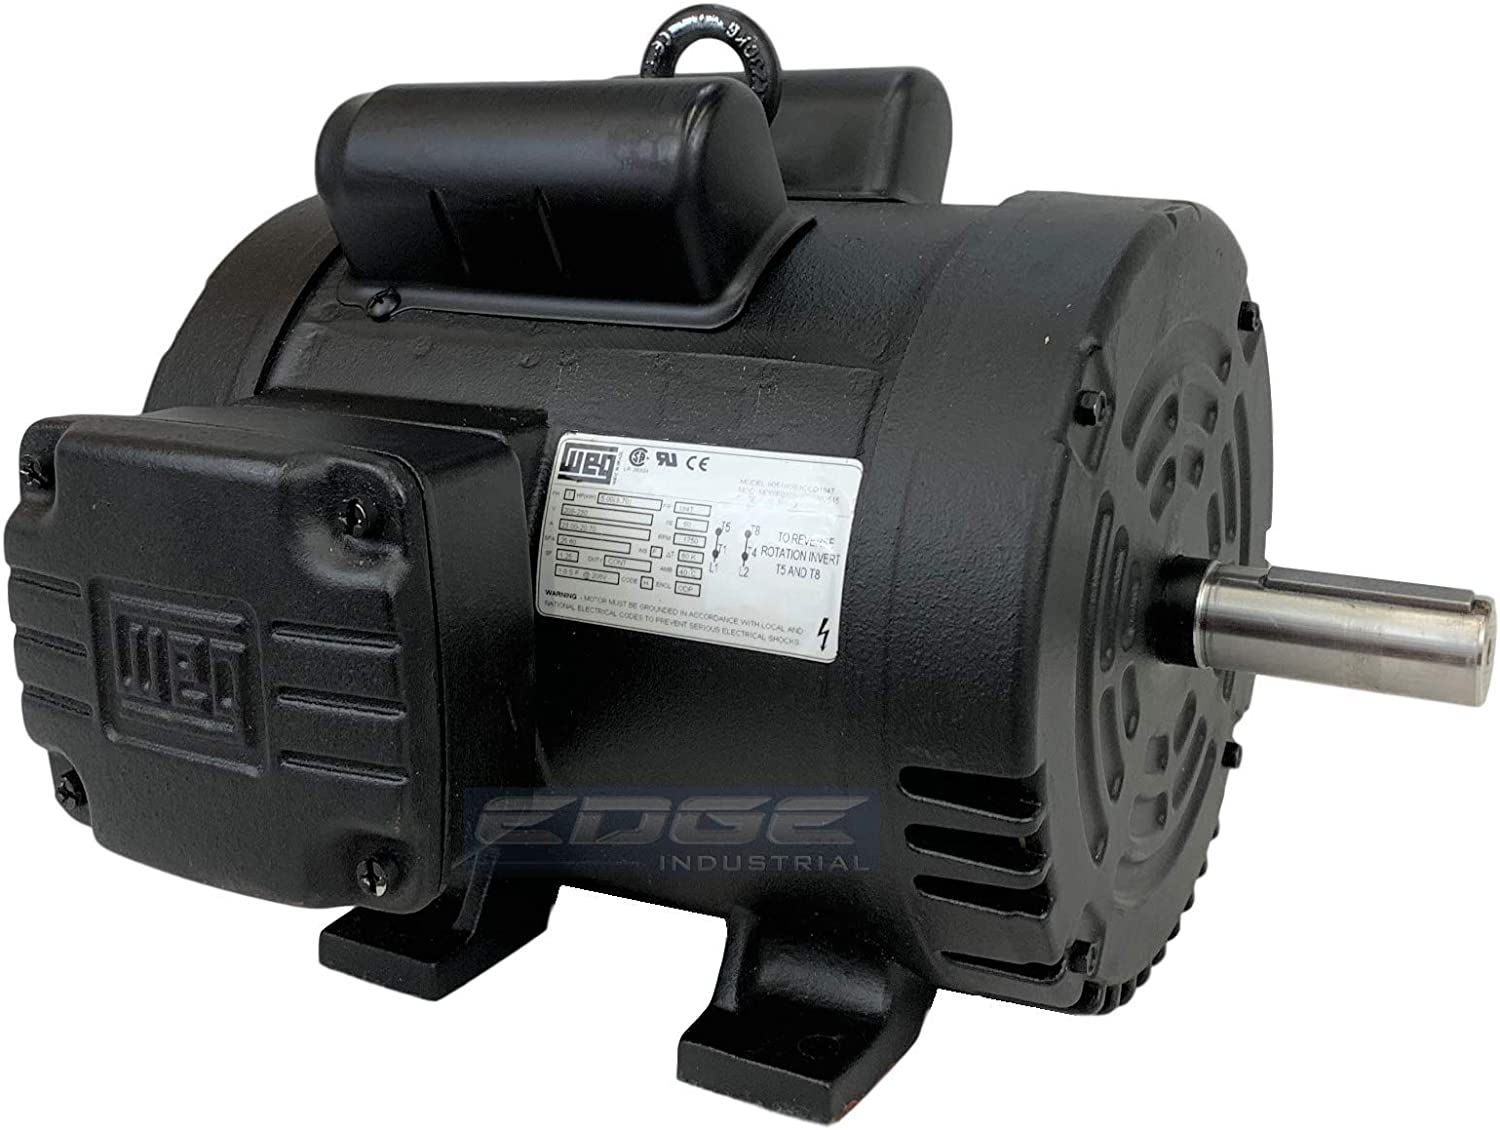 NEW 5HP 184T FRAME WEG ELECTRIC MOTOR FOR AIR COMPRESSOR 1750 RPM 230V 21.5 AMP